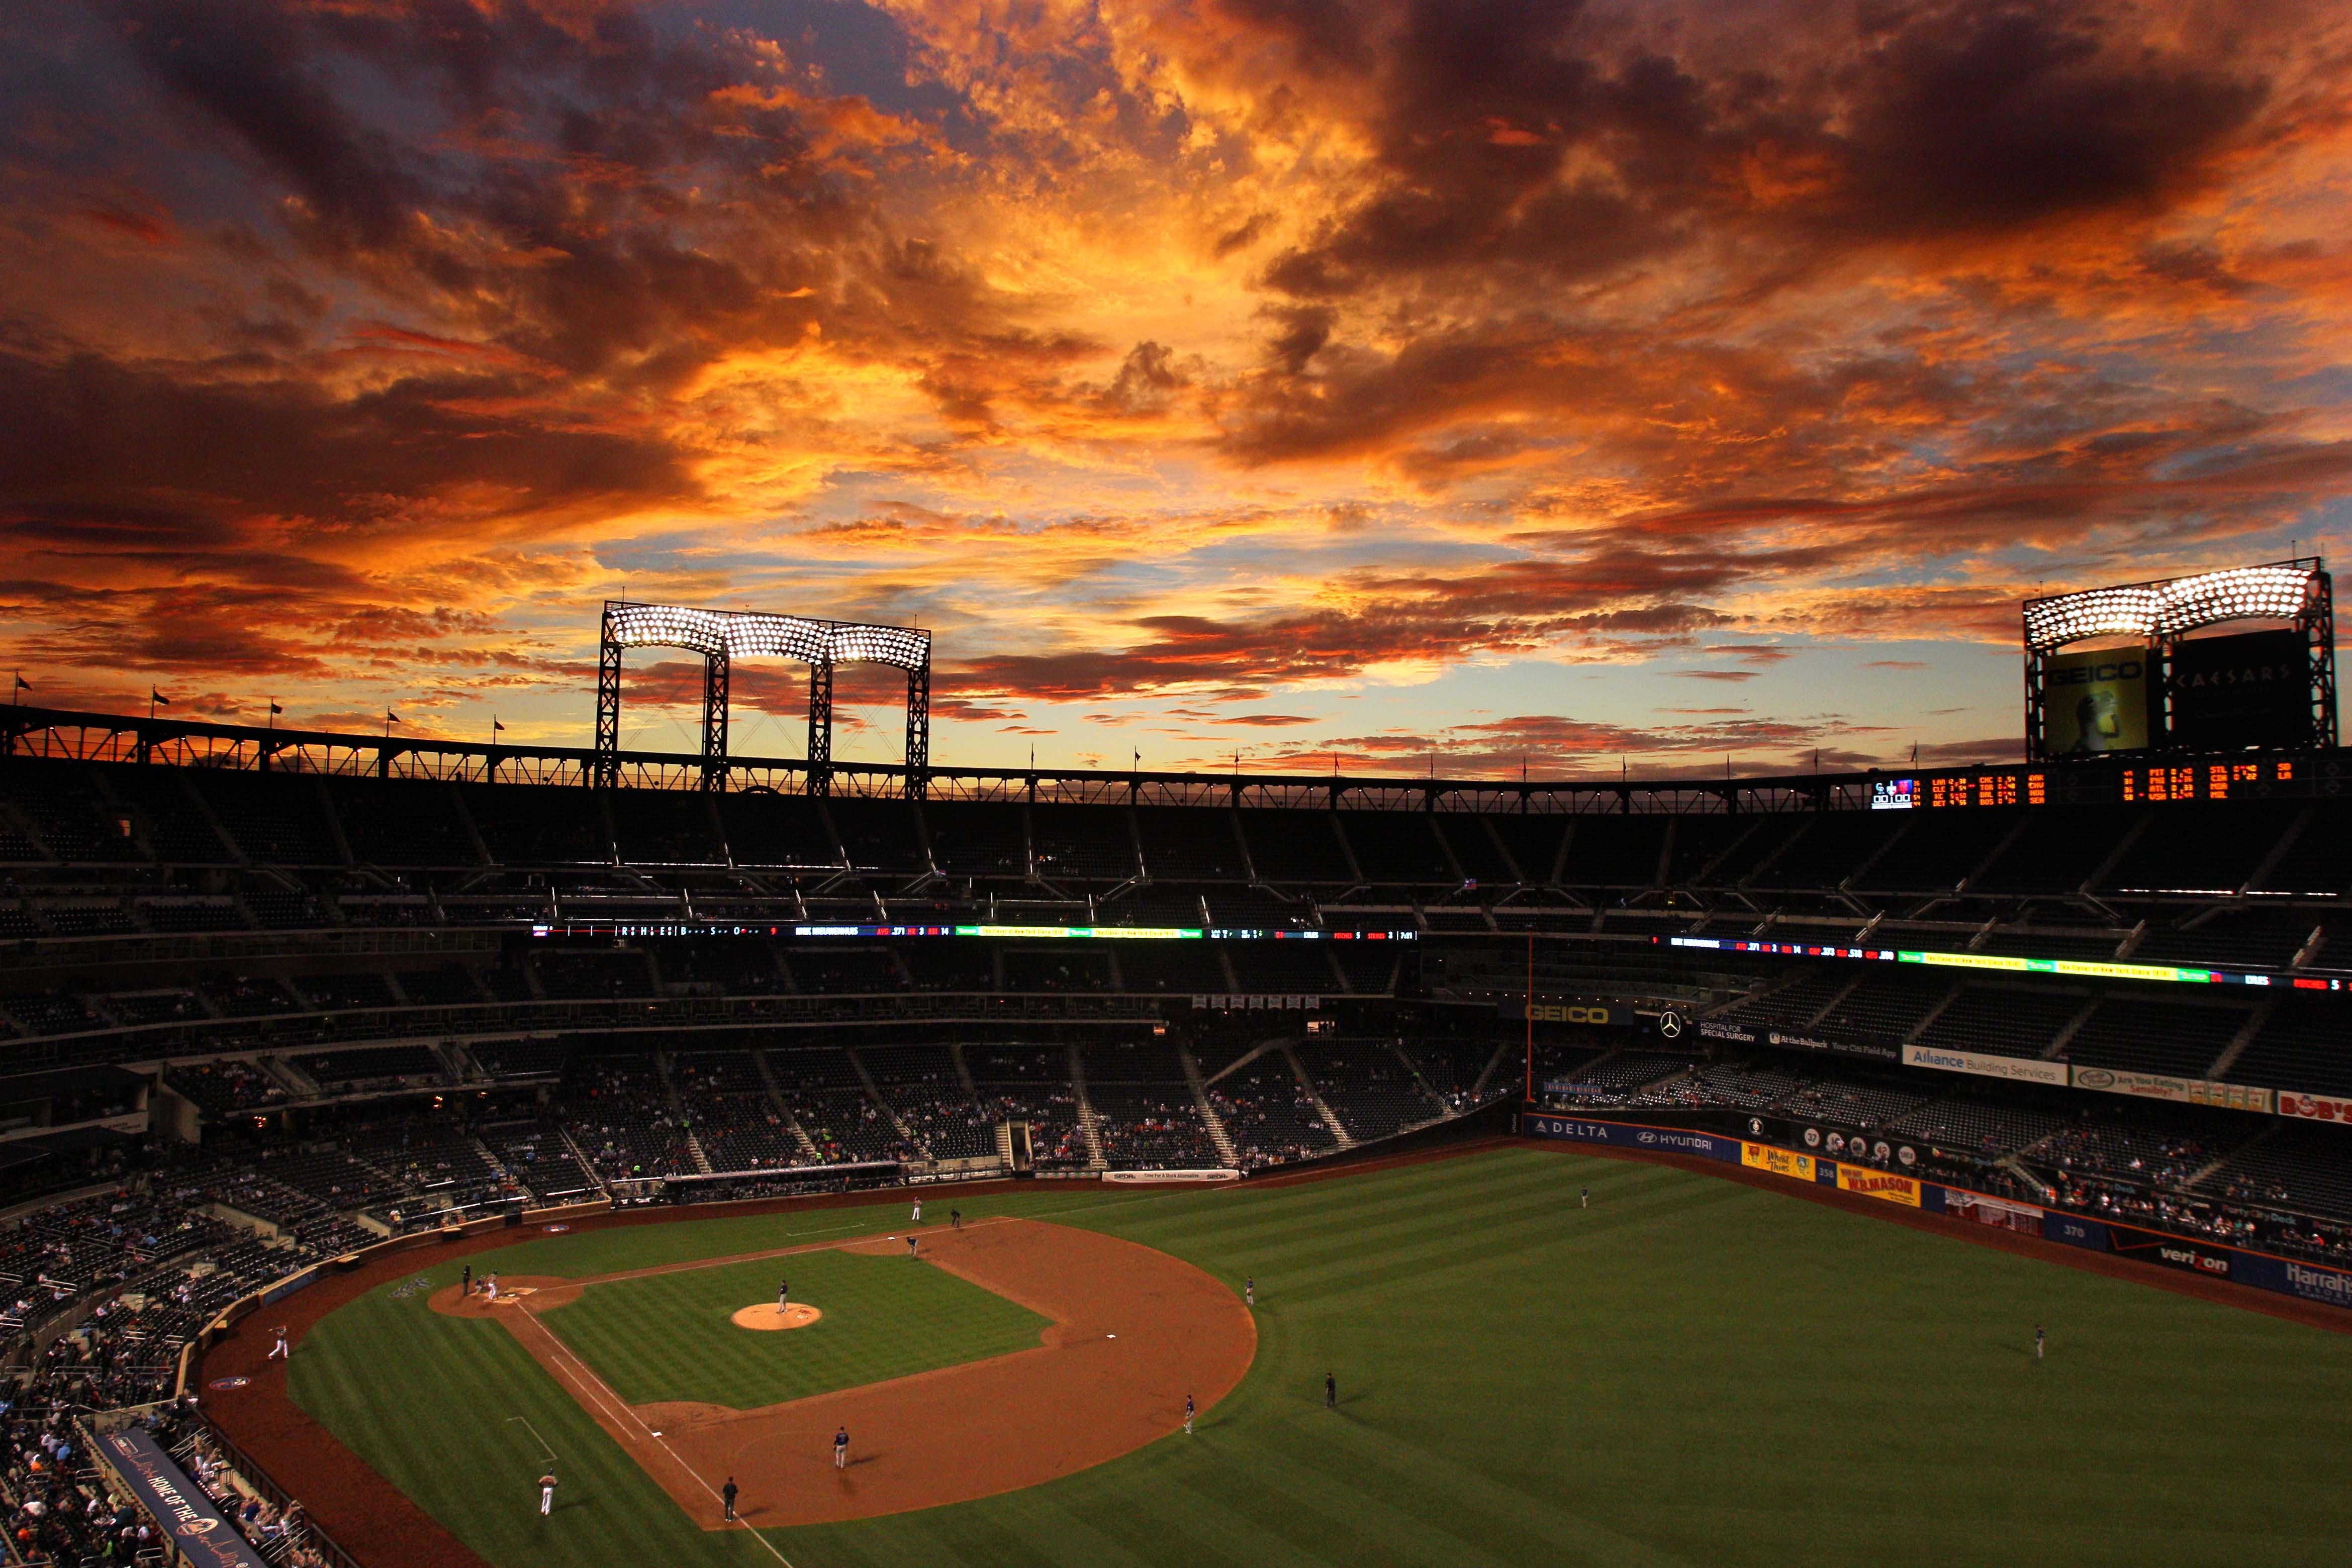 No one ever told me how different it is to watch the Mets as a New Yorker.